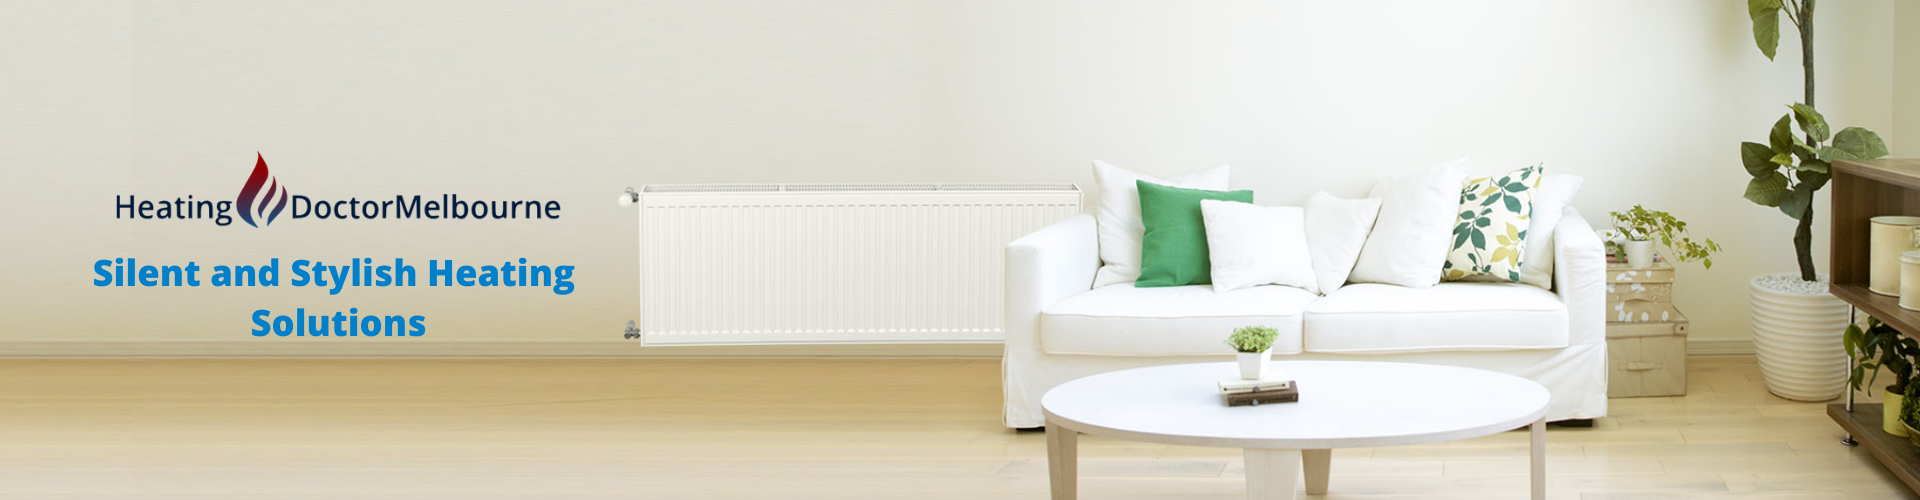 Hydronic Heating Service Melbourne